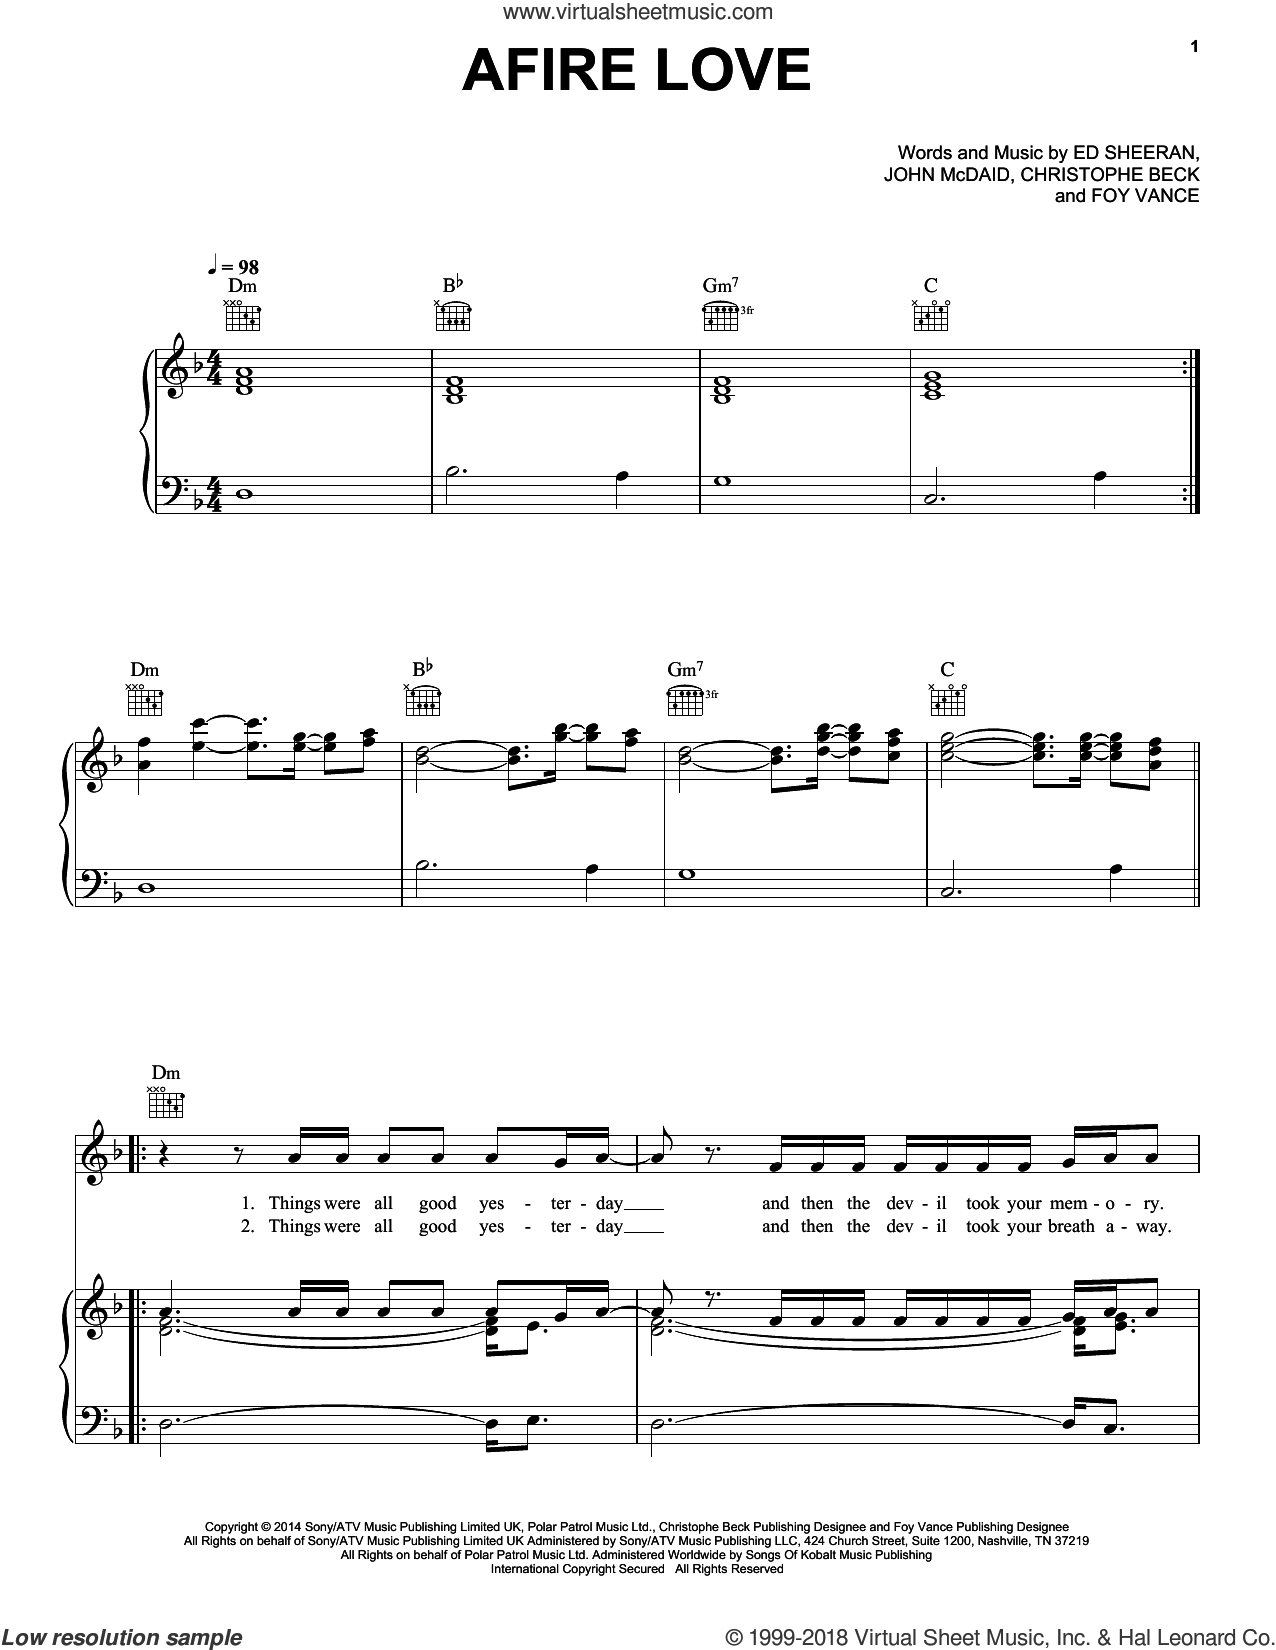 Afire Love sheet music for voice, piano or guitar by Ed Sheeran, Christophe Beck, Foy Vance and John McDaid, intermediate skill level